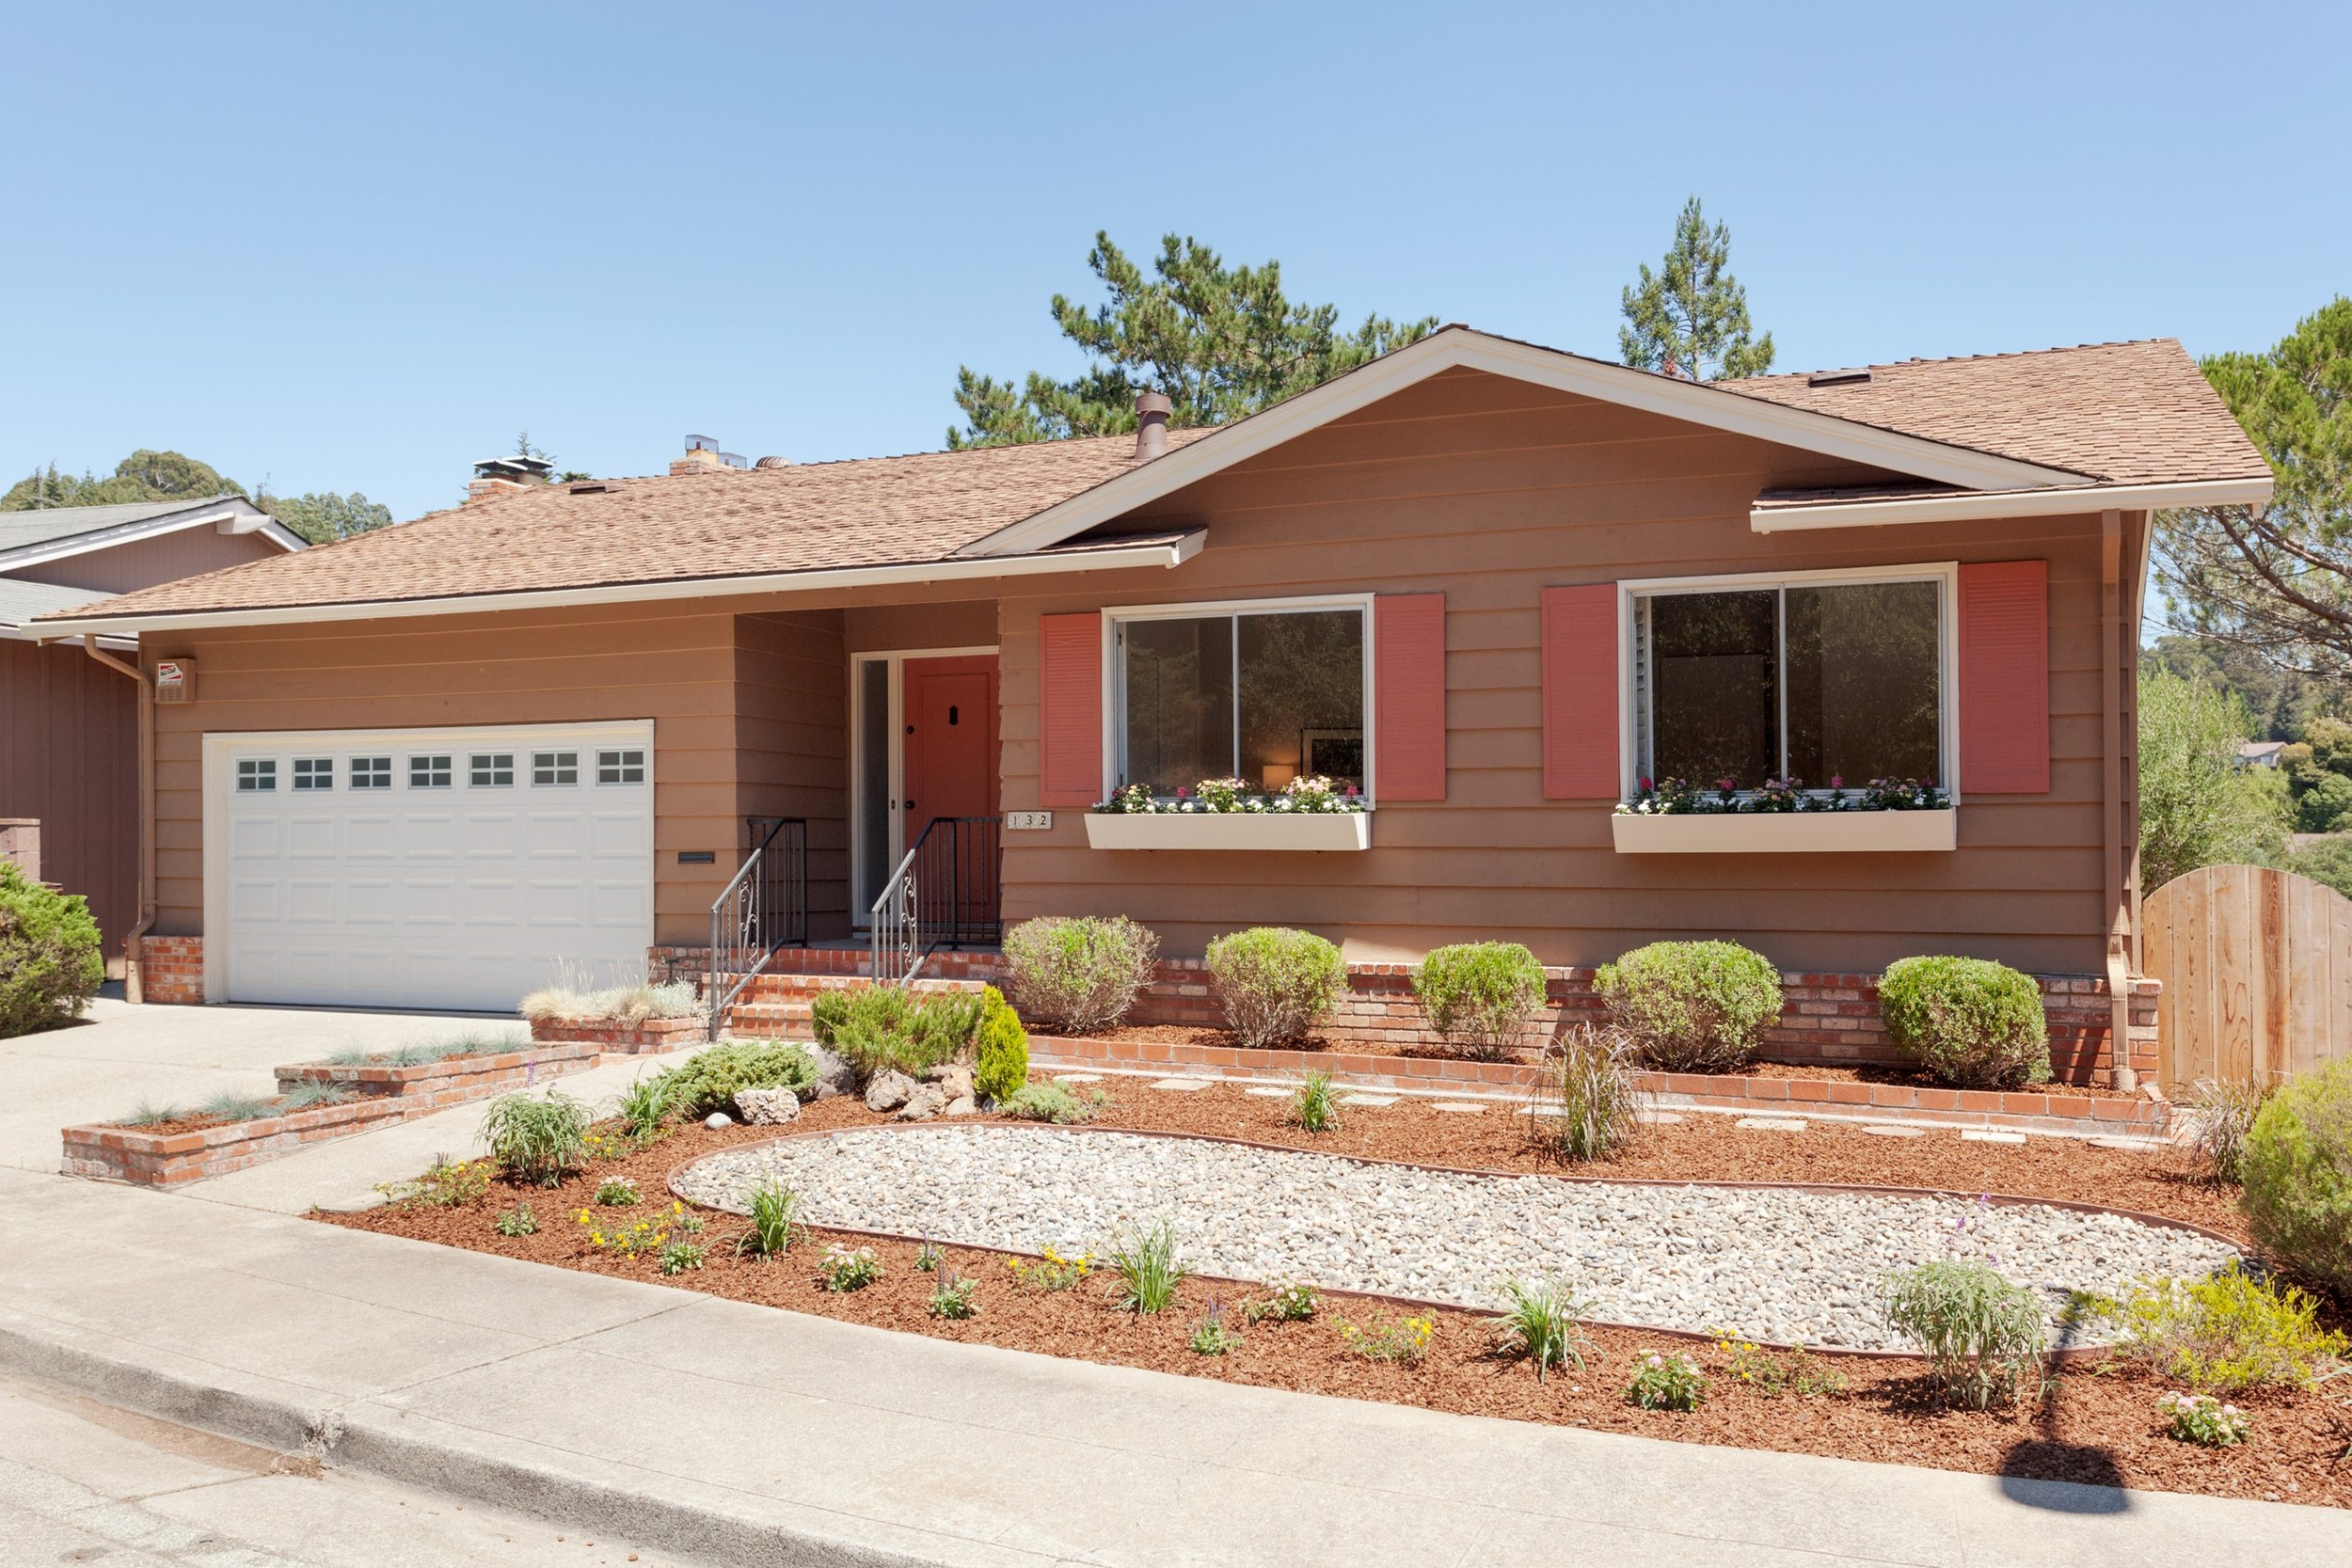 SOLD | 132 MONTWOOD WAY, OAKLAND $ 960,000